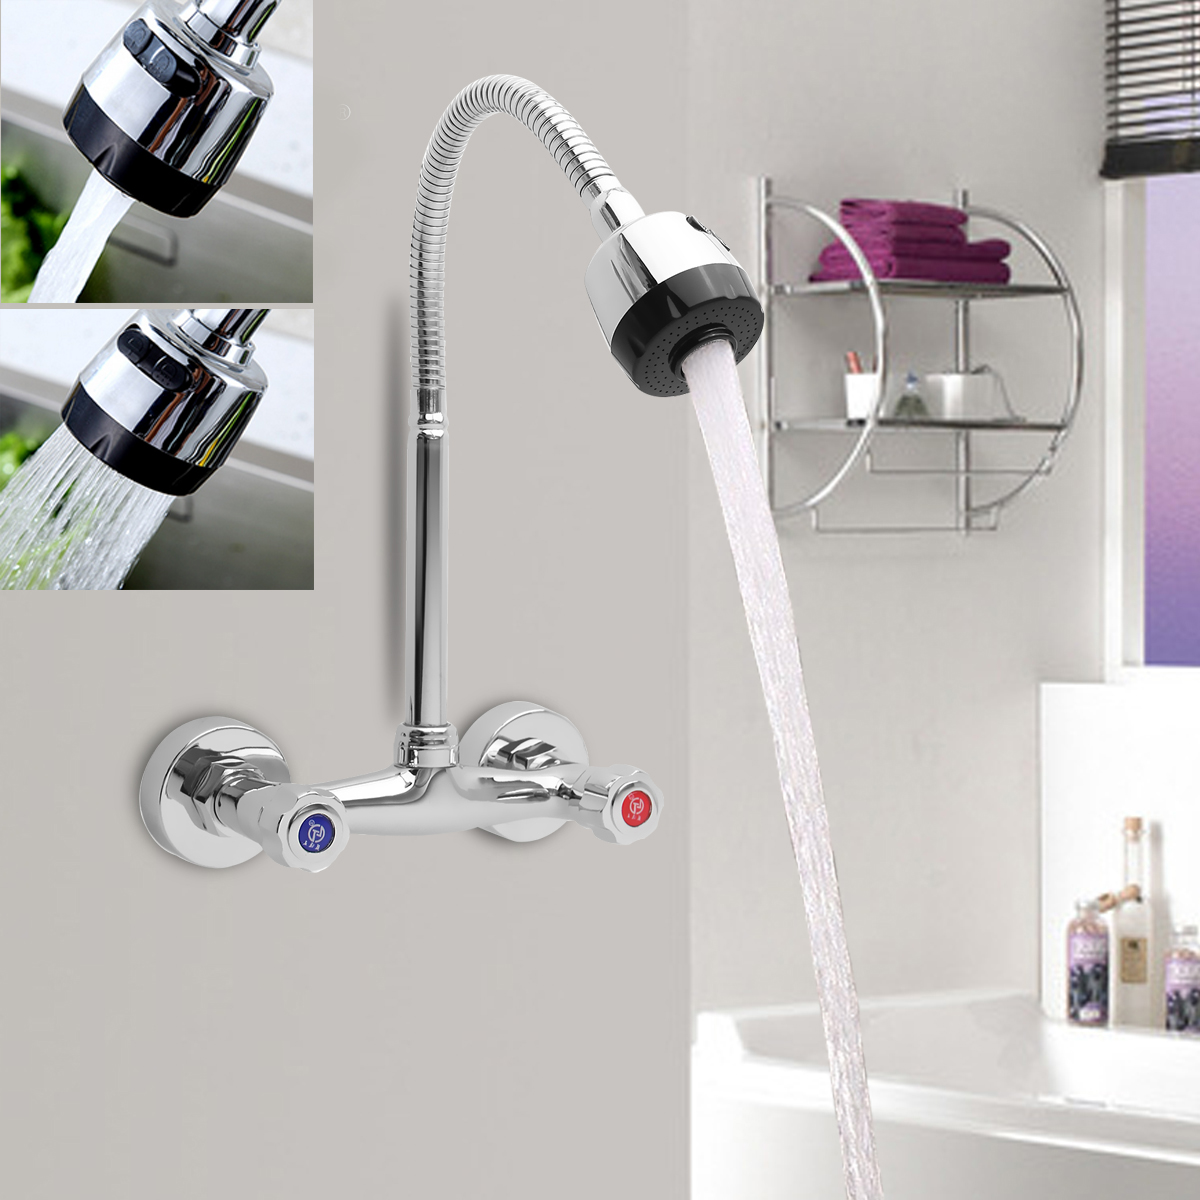 Xueqin 360Rotation Polished Chrome Pull Down Kitchen Sink Spray Faucet Wall Mounted Mixer Tap Modern Dual Handle Cold And HotXueqin 360Rotation Polished Chrome Pull Down Kitchen Sink Spray Faucet Wall Mounted Mixer Tap Modern Dual Handle Cold And Hot